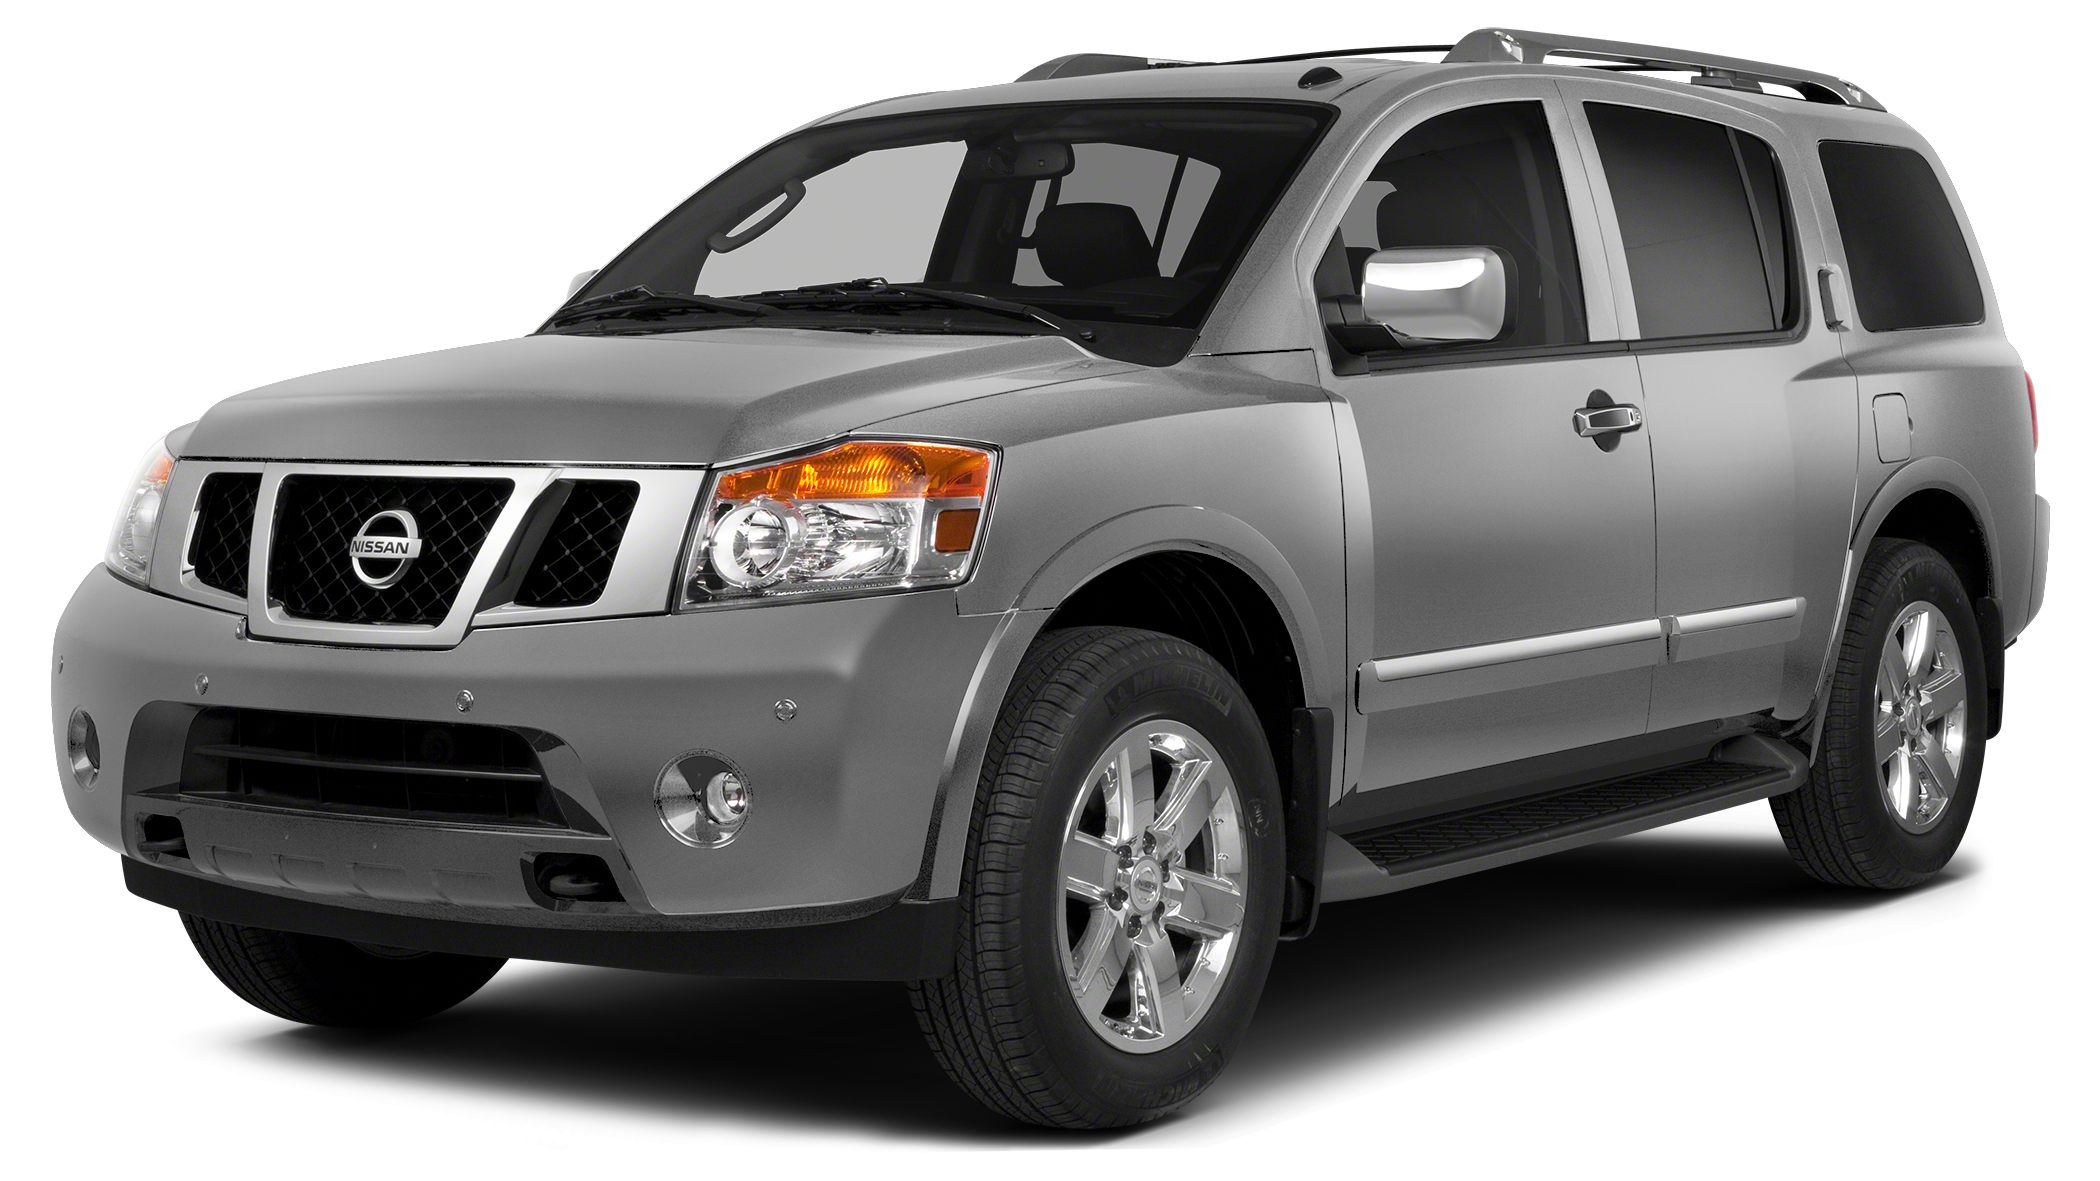 2015 Nissan Armada SL This Silver 2015 Nissan Armada SL might be just the SUV for you Looking for